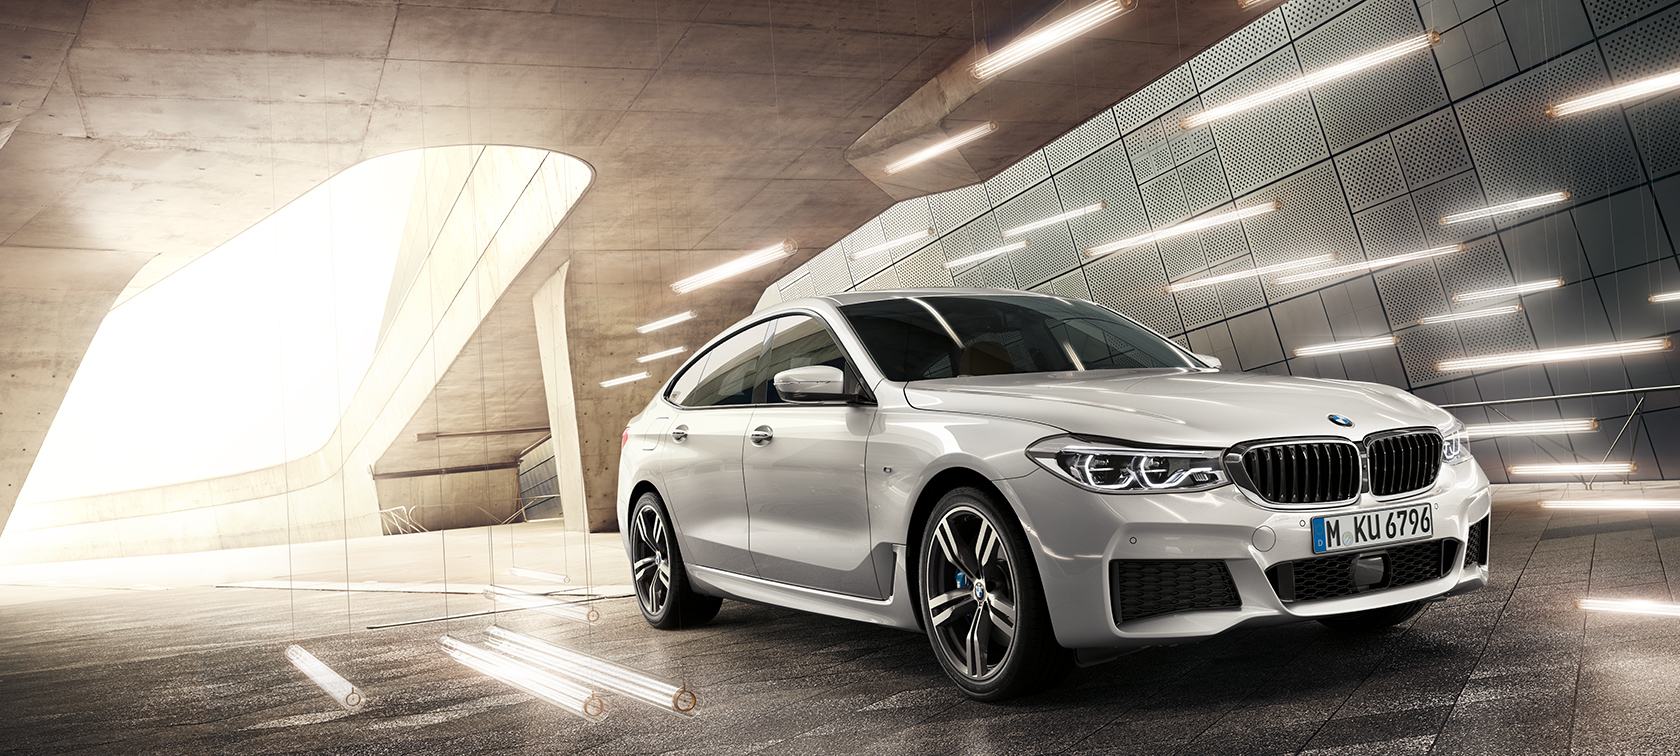 BMW 6 Series Gran Turismo G32 2017 Mineral White metallic three-quarter front view